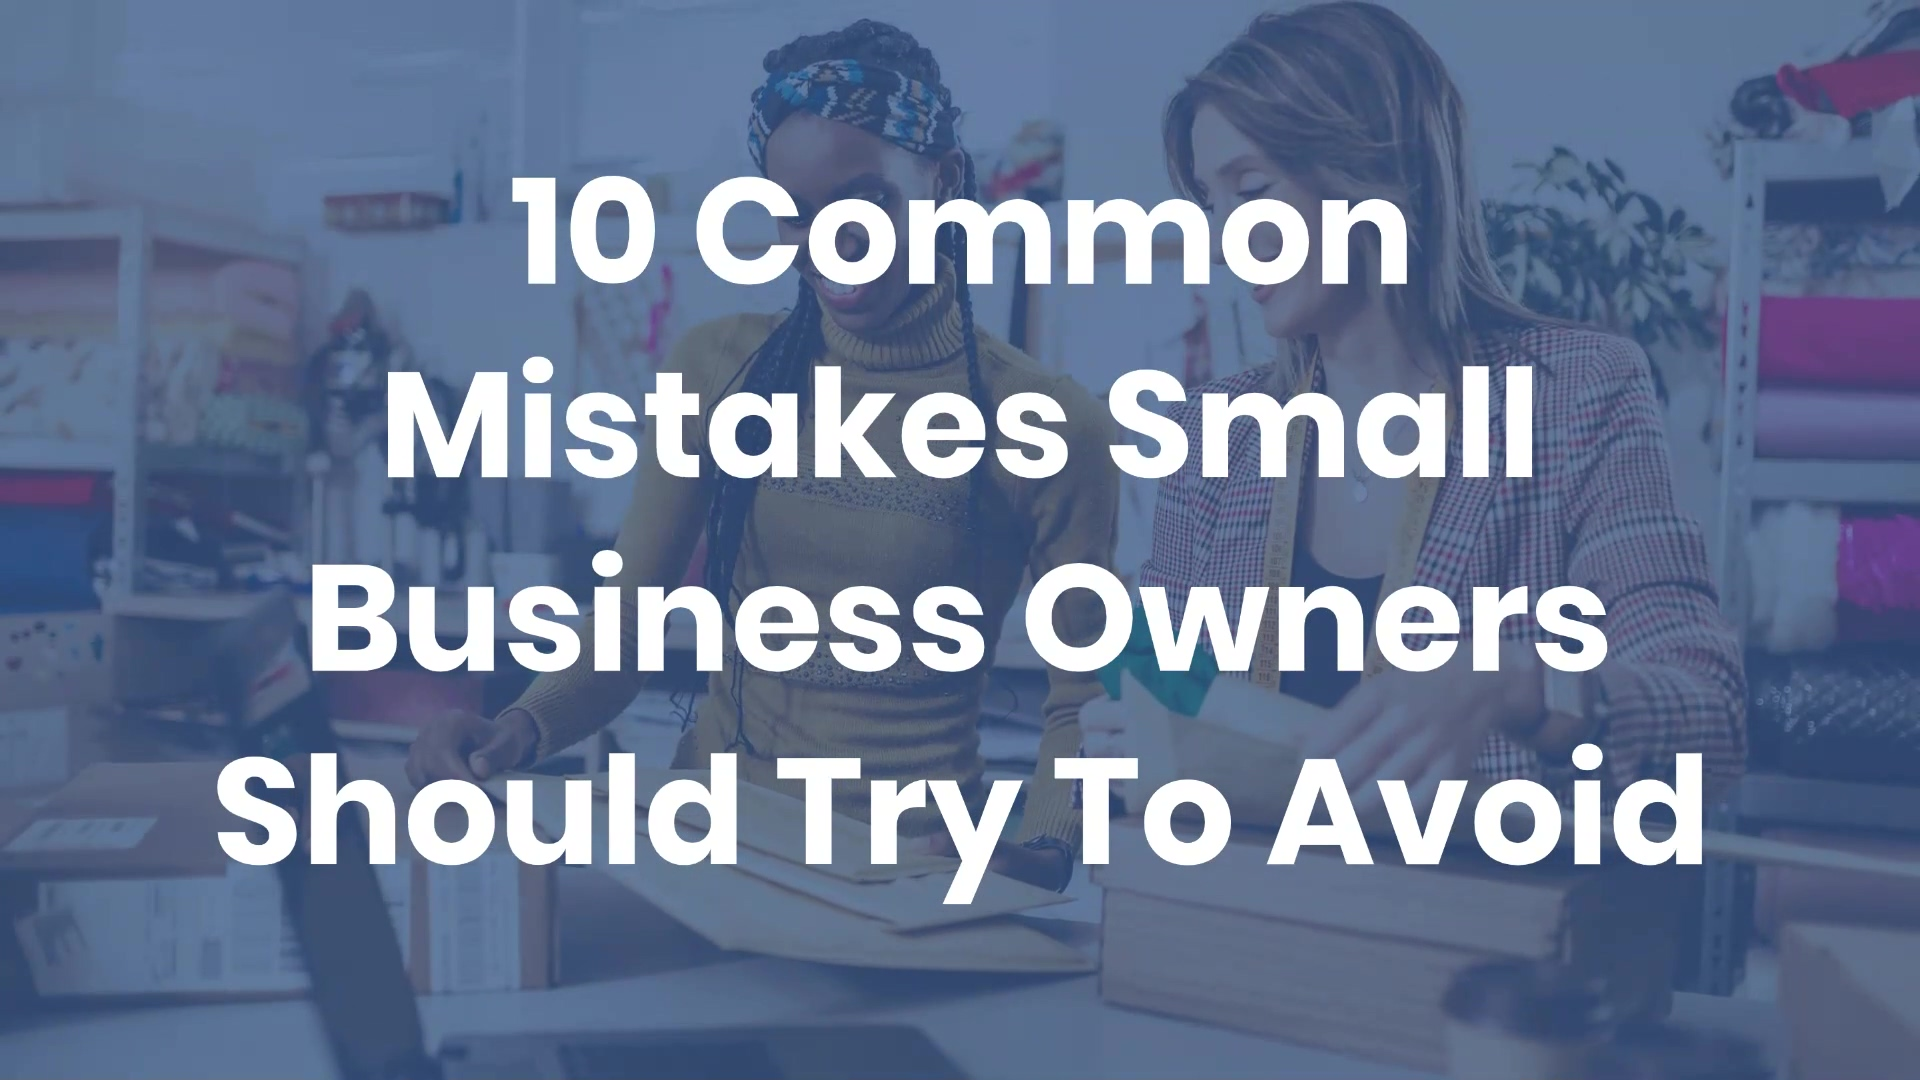 10_Common_Mistakes_Small_Business_Owners